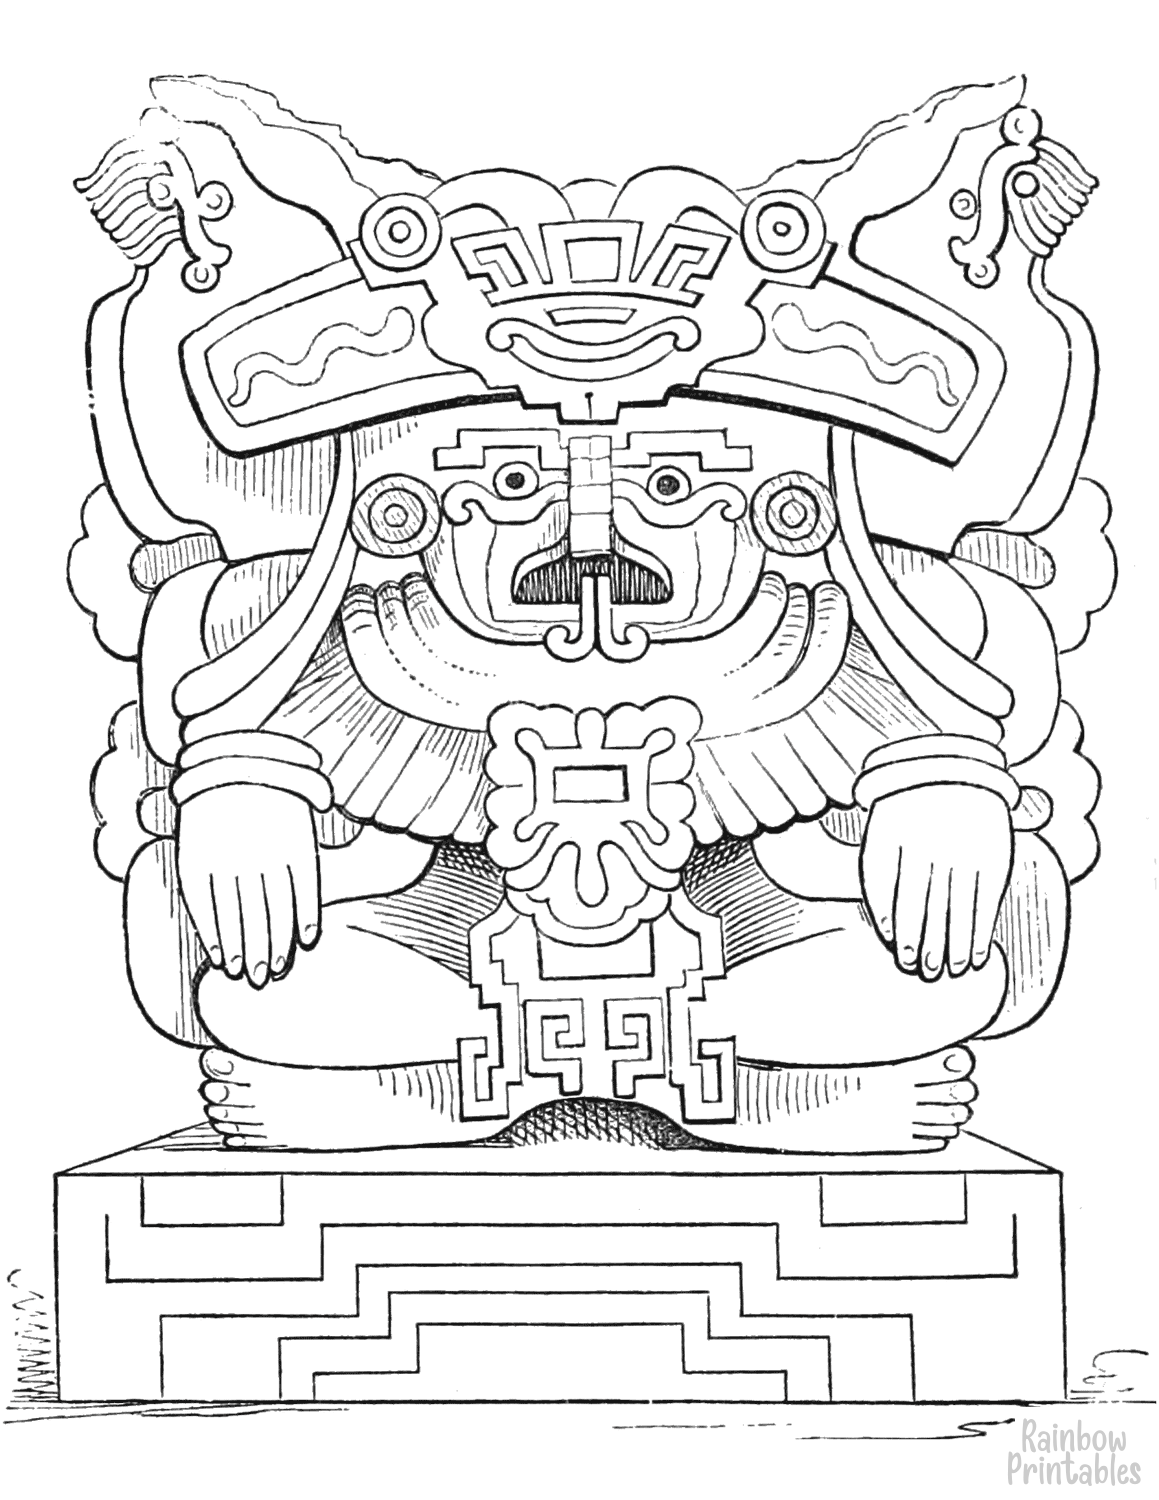 cartoon-line-art-world-cultures-oaxaca-vase-coloring-page-for-kids